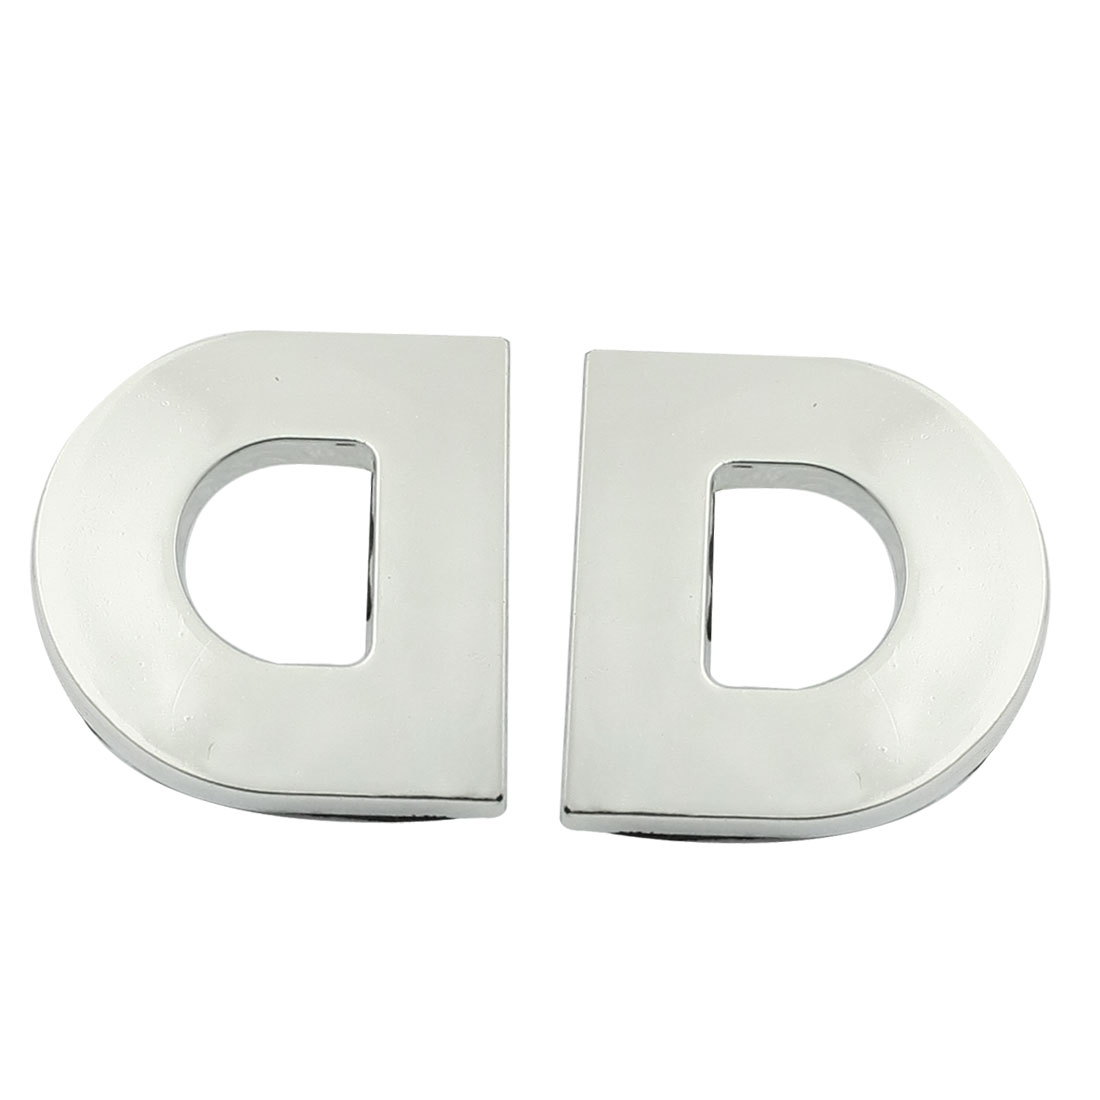 Motorcycle Car D Letter 3D Emblem Badge Sticker Silver Tone 2 Pcs